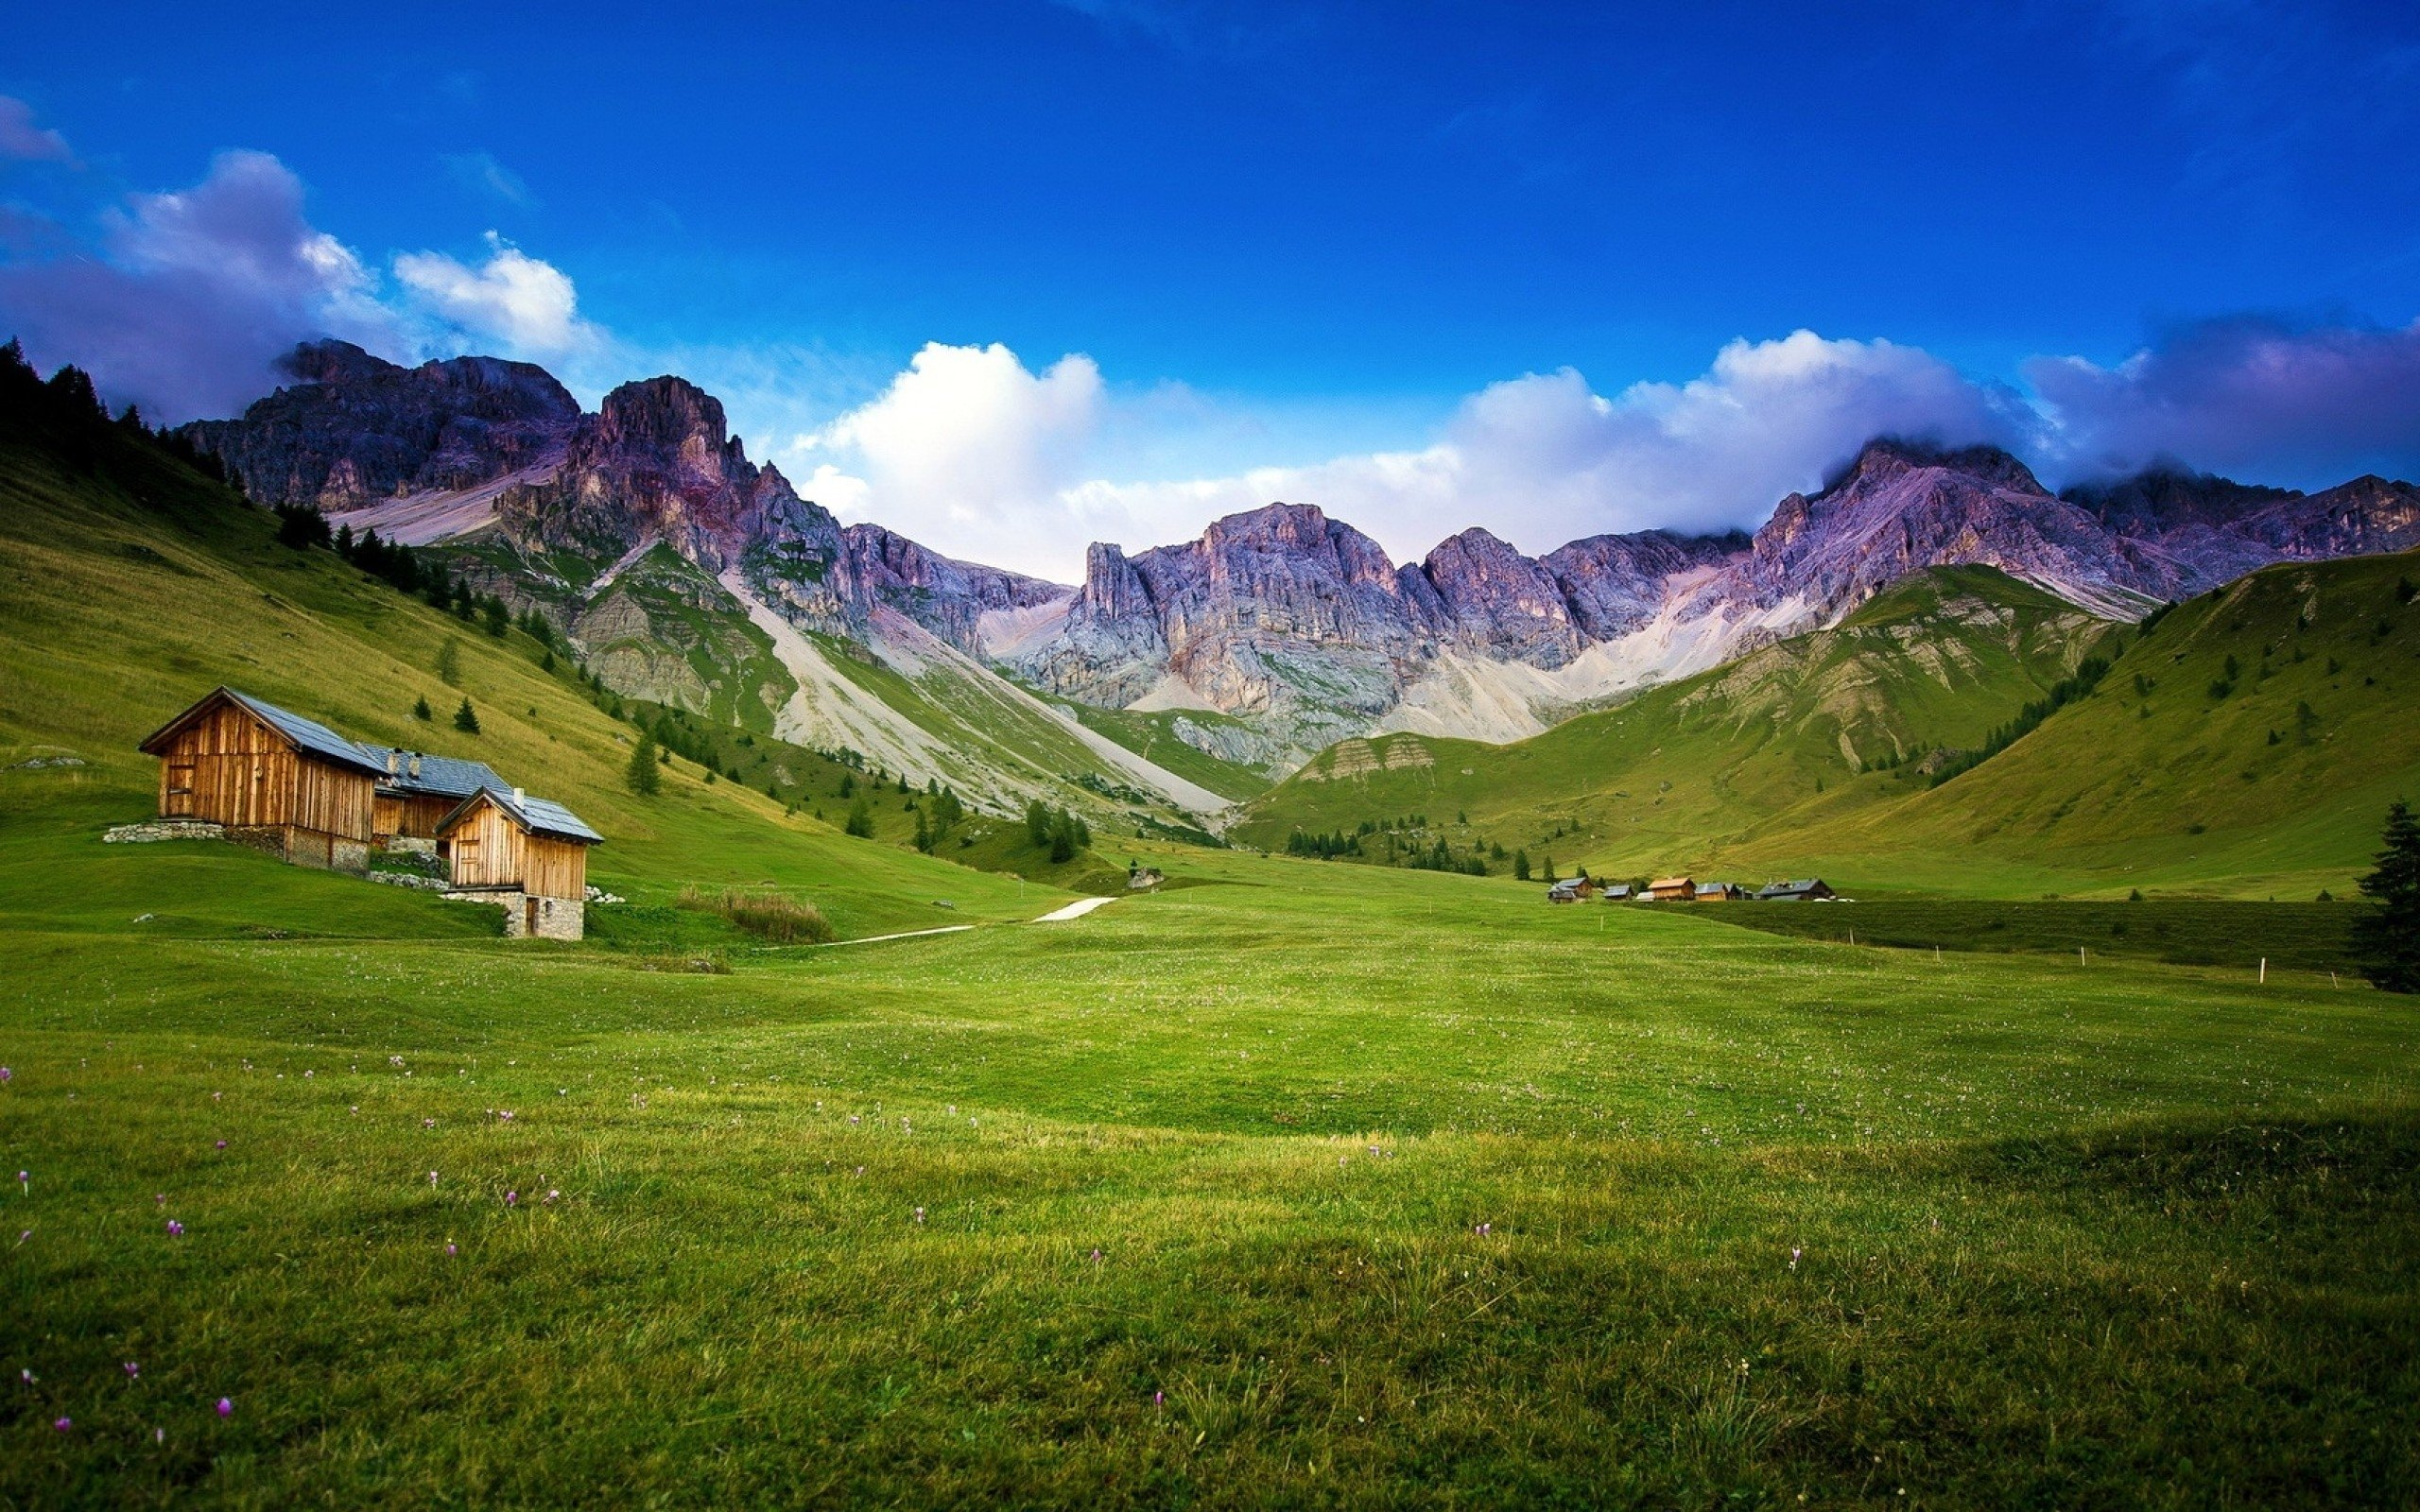 mountains landscape nature mountain rustic cabin farm wallpaper 2560x1600